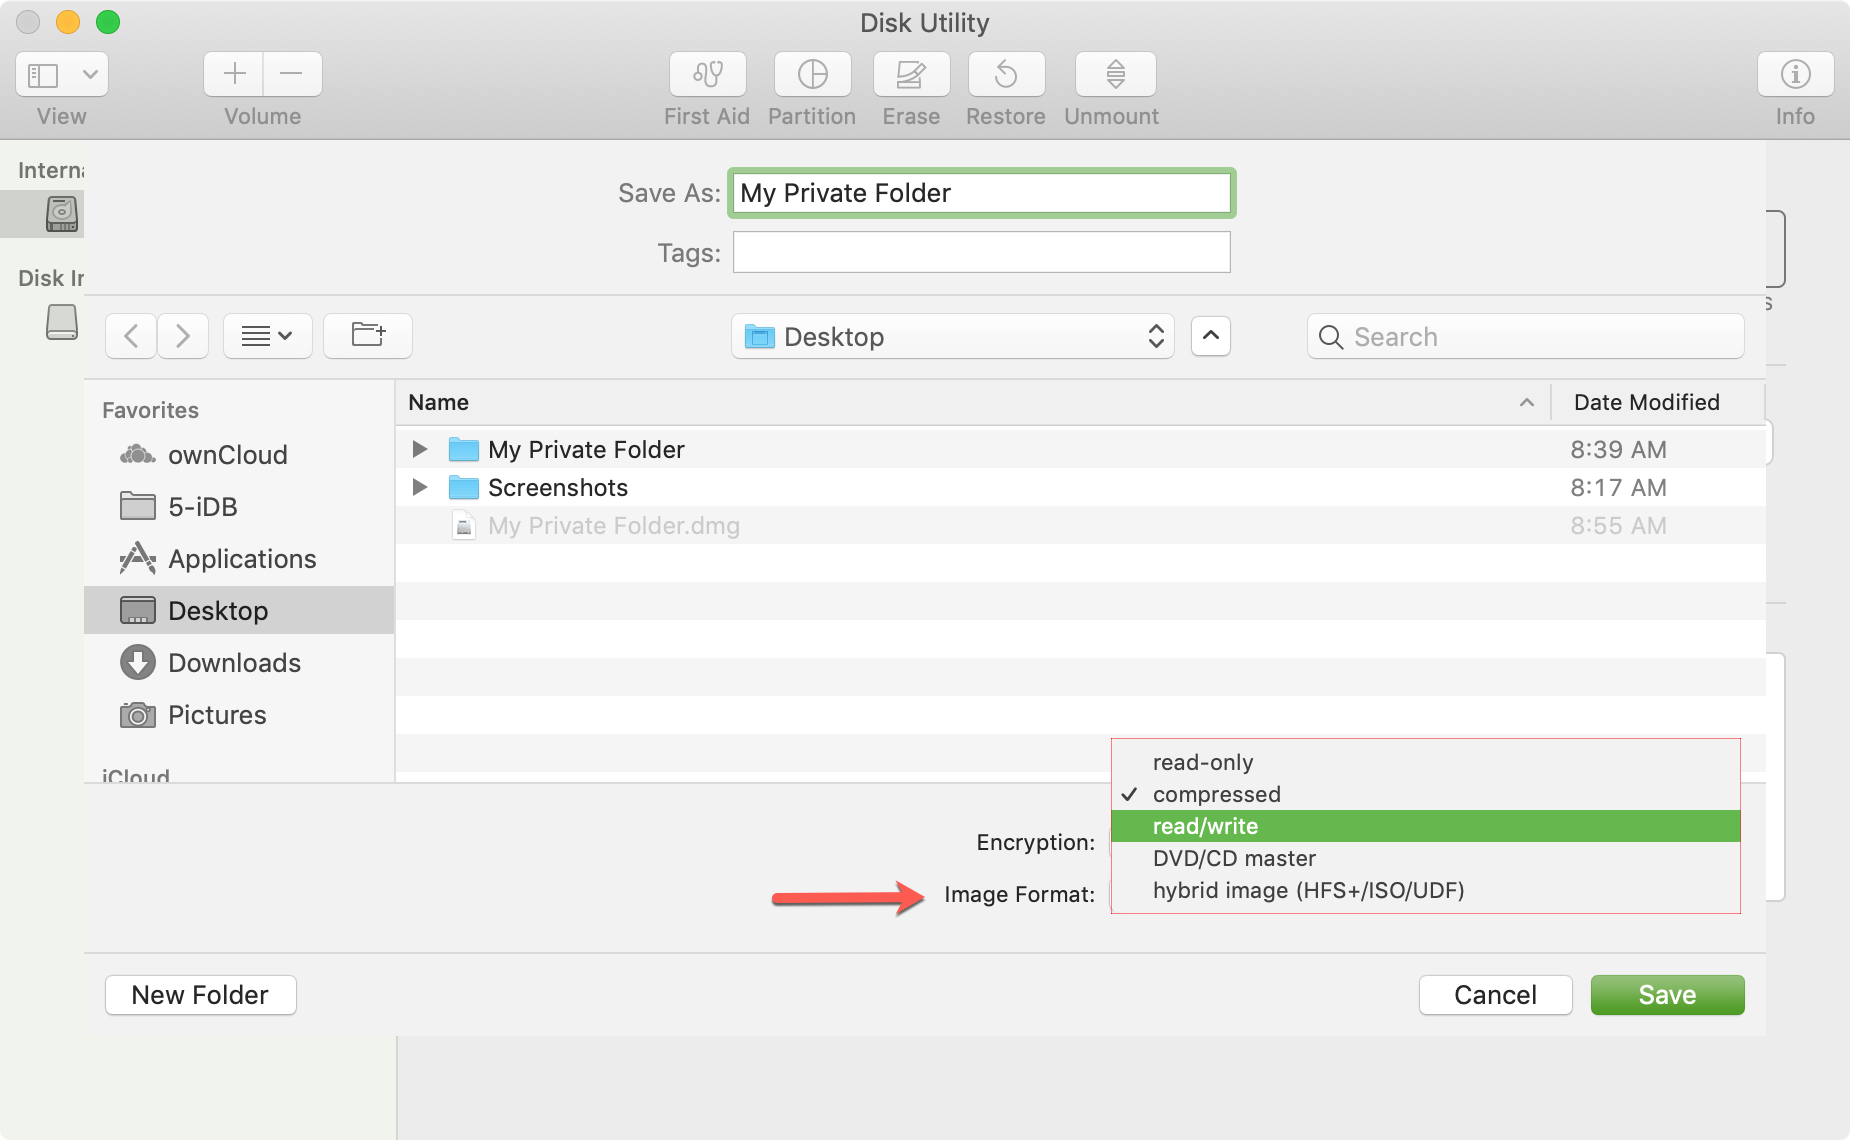 Disk Utility Choose Image Format Mac